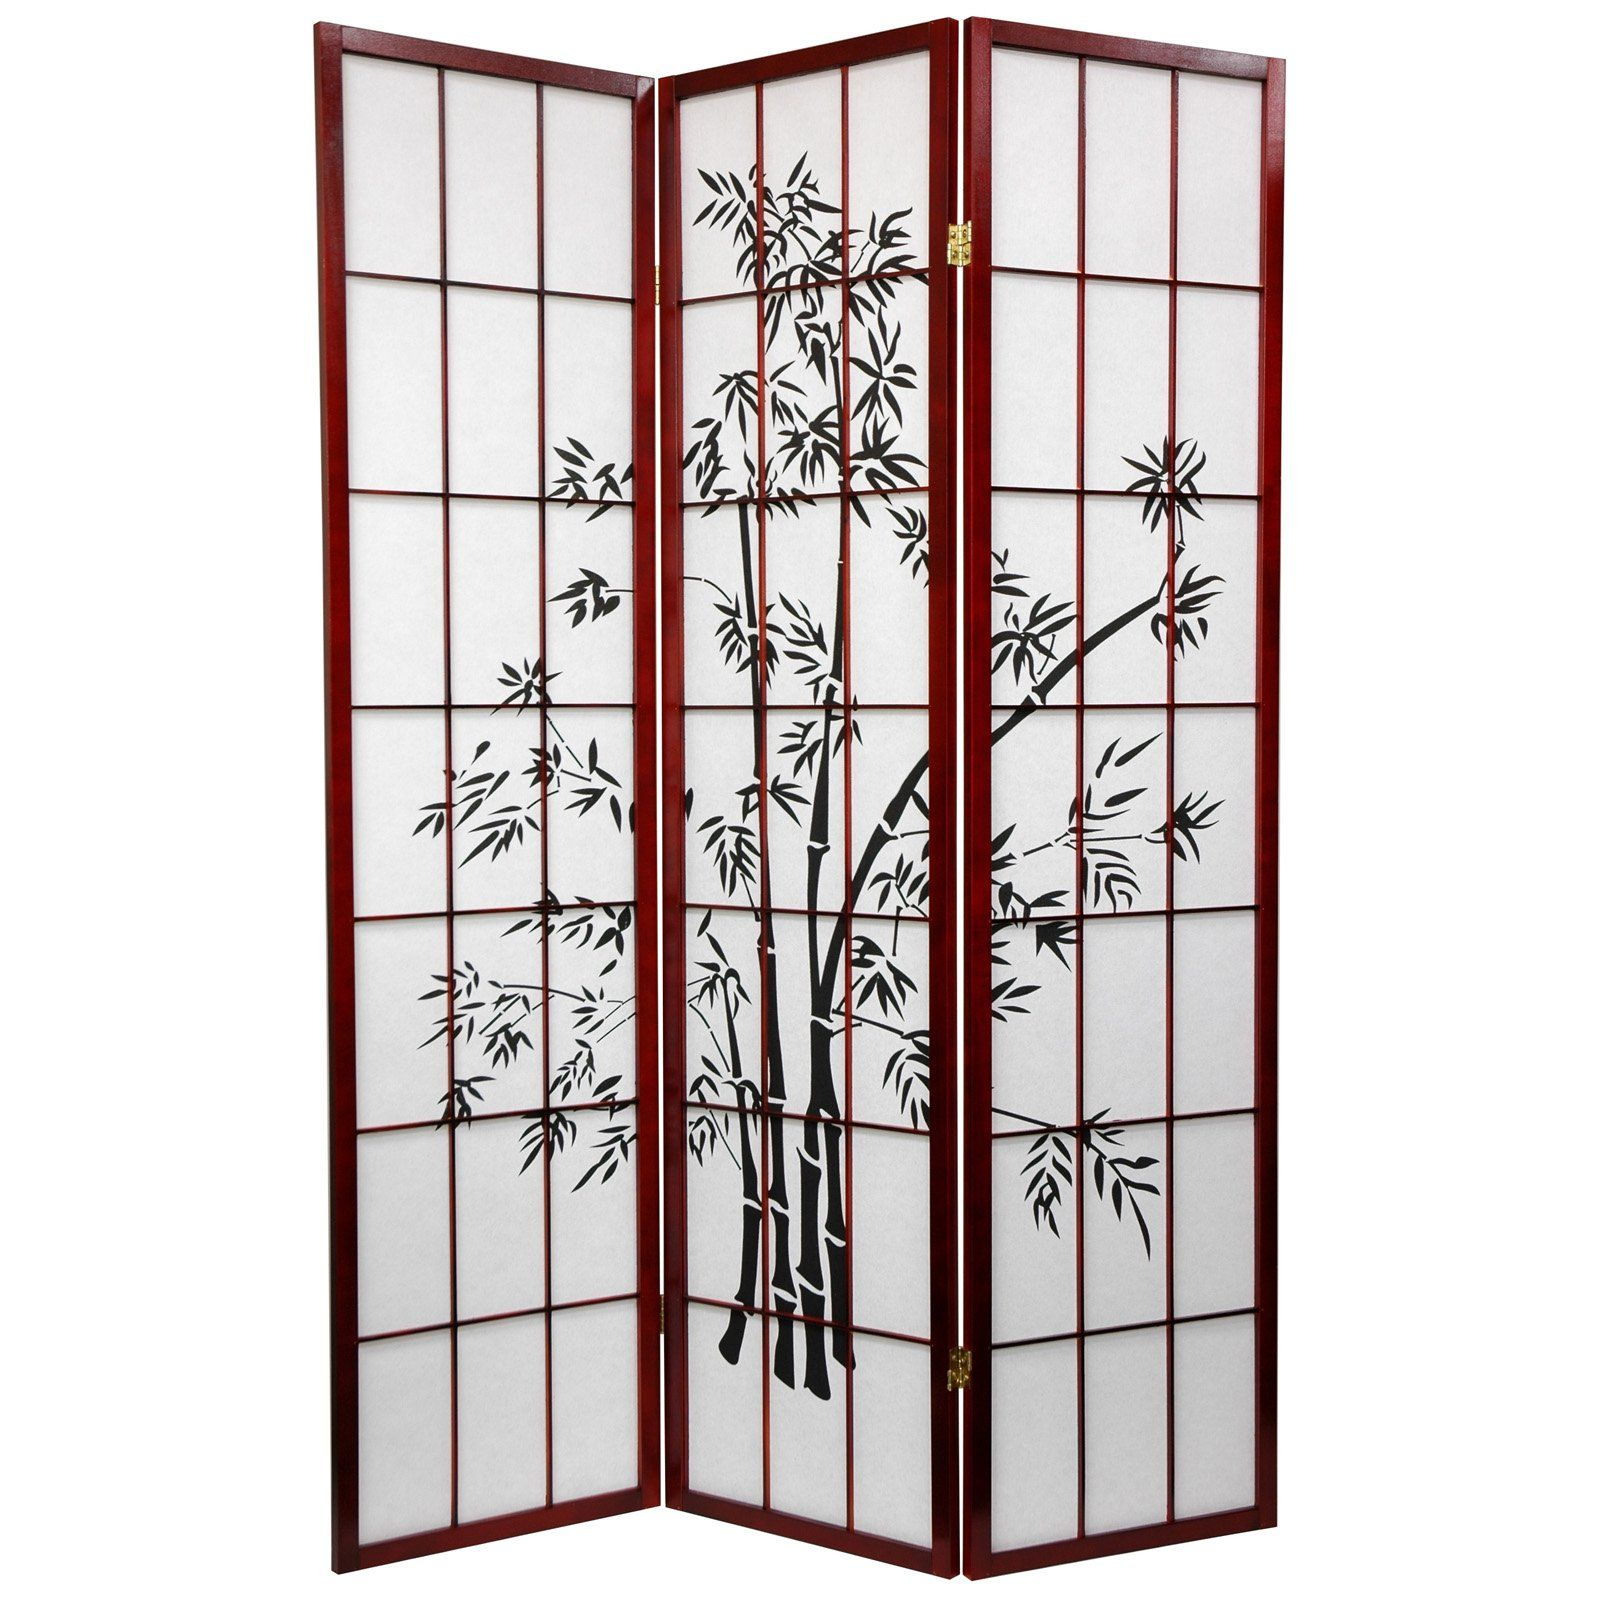 Oriental furniture lucky bamboo rosewood room divider sslucky